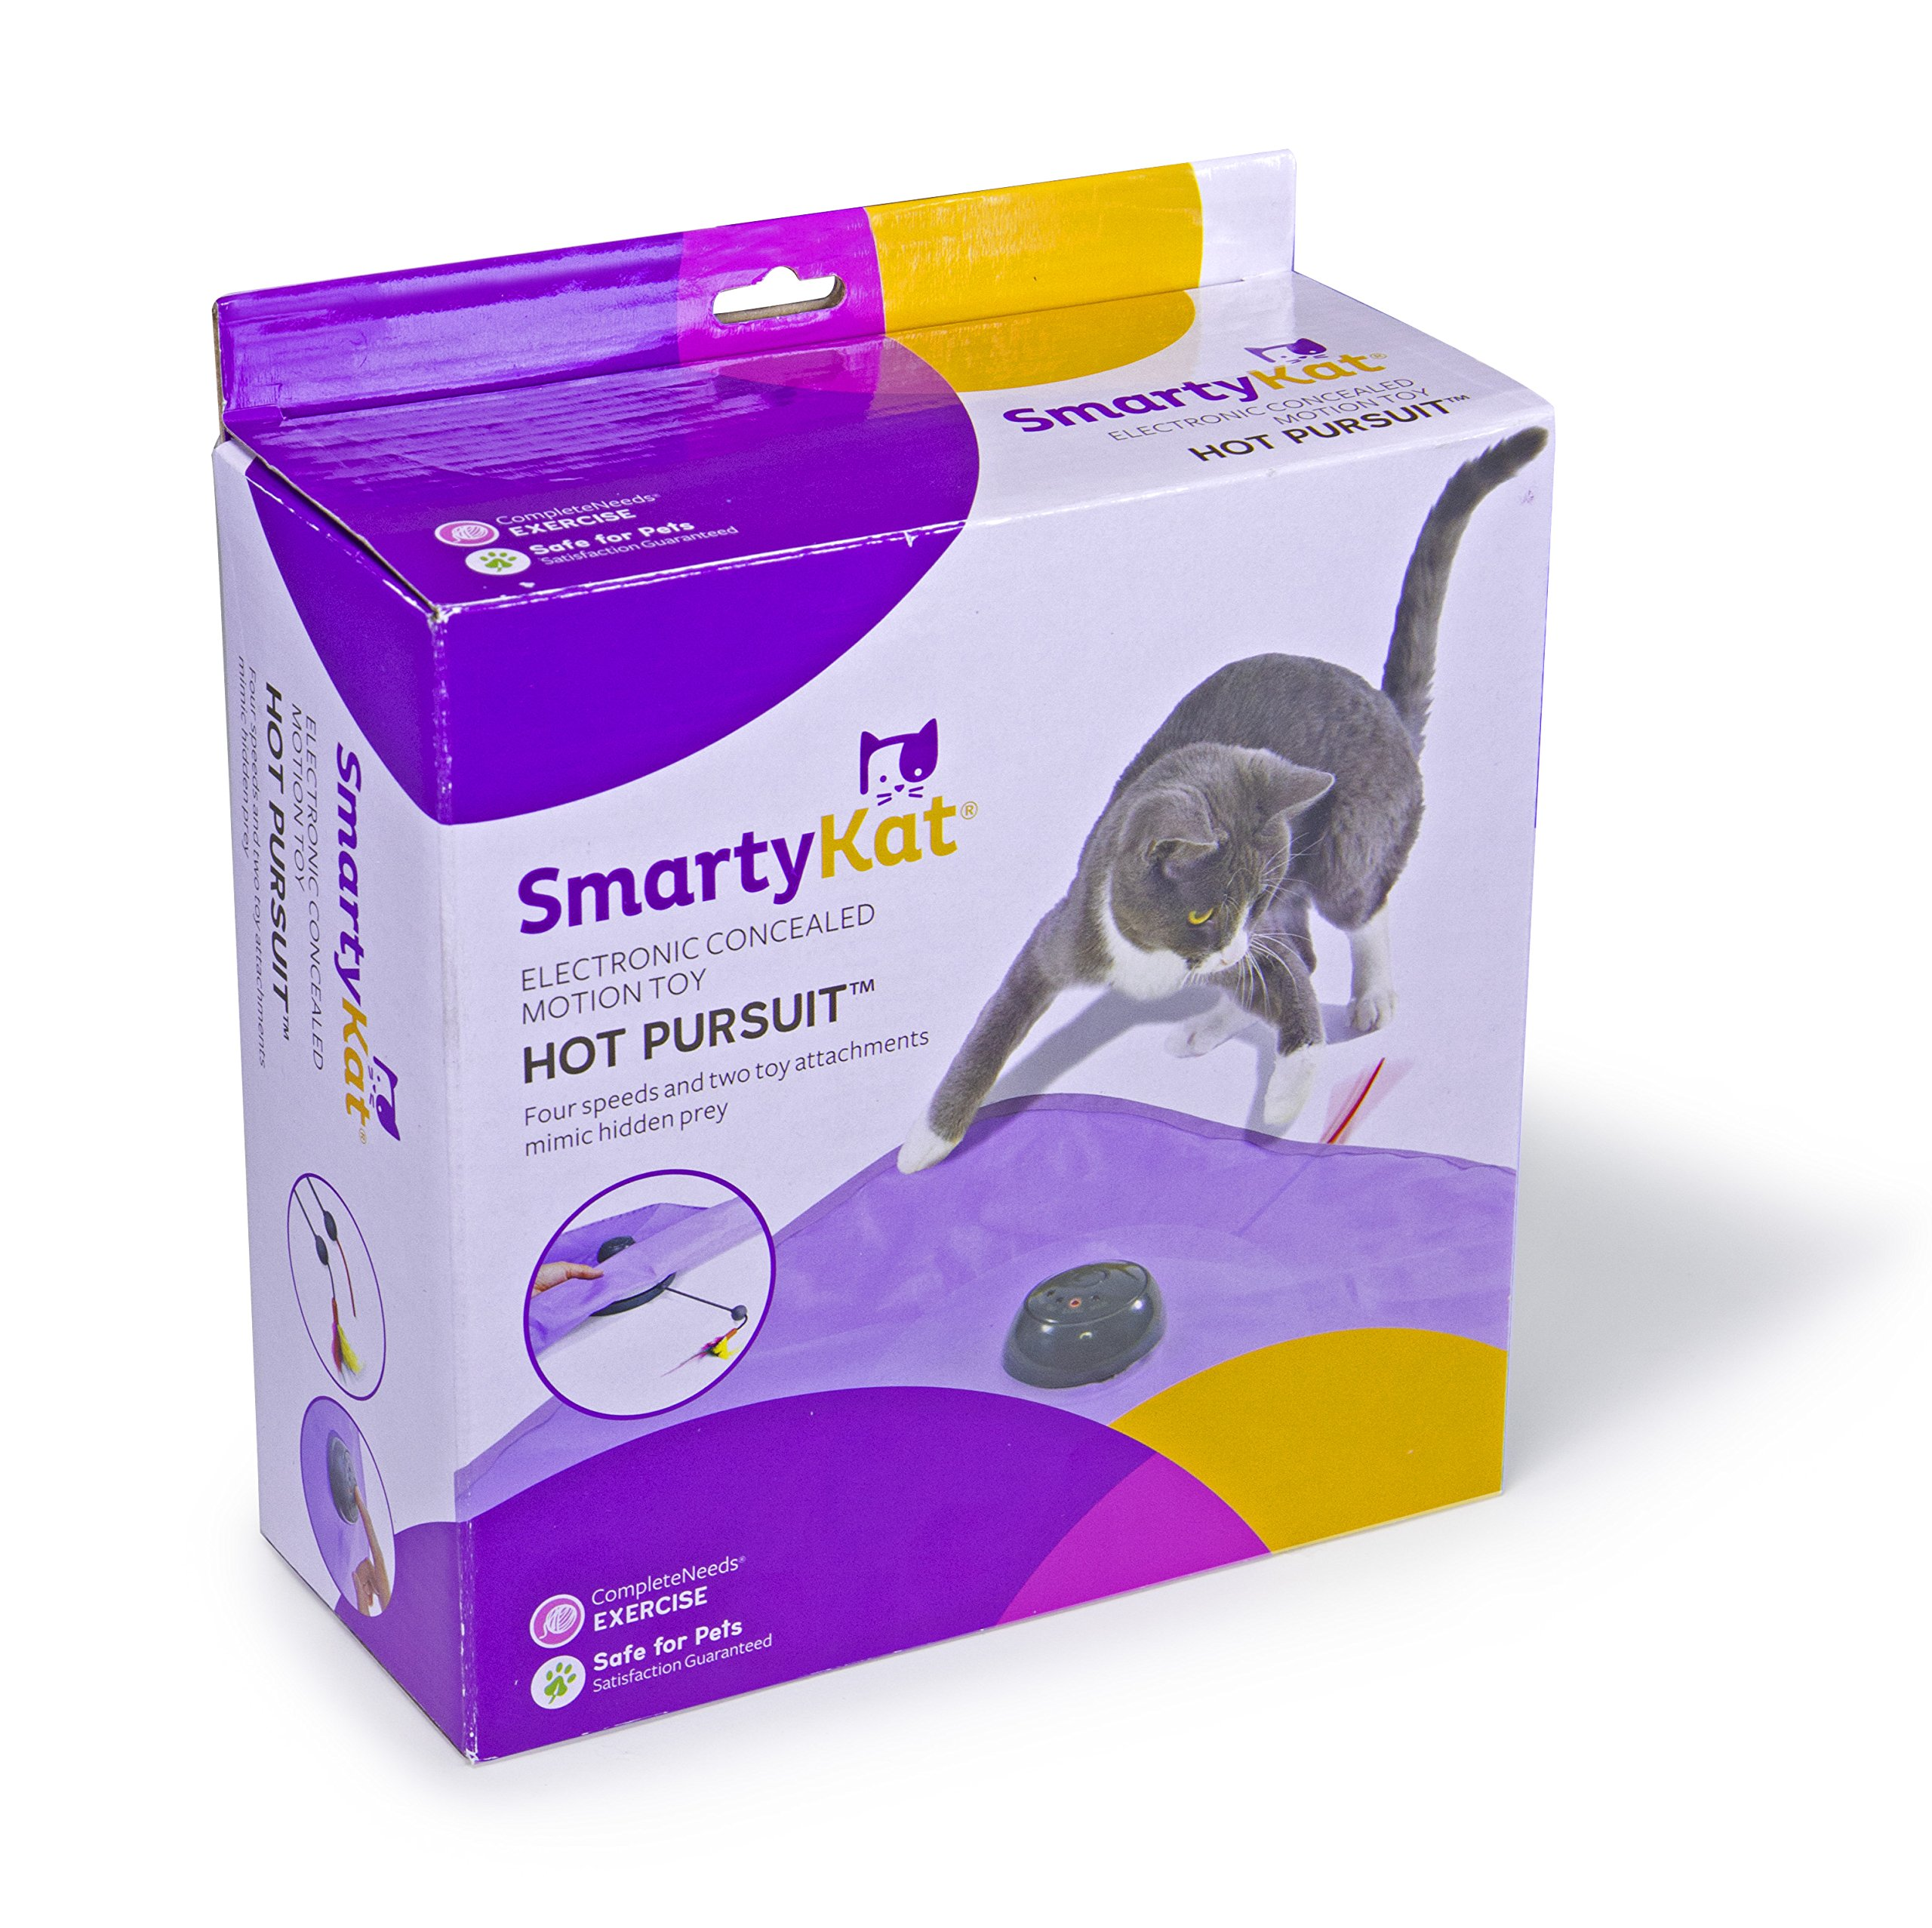 SmartyKat Hot Pursuit Cat Toy Concealed Motion Toy by SmartyKat